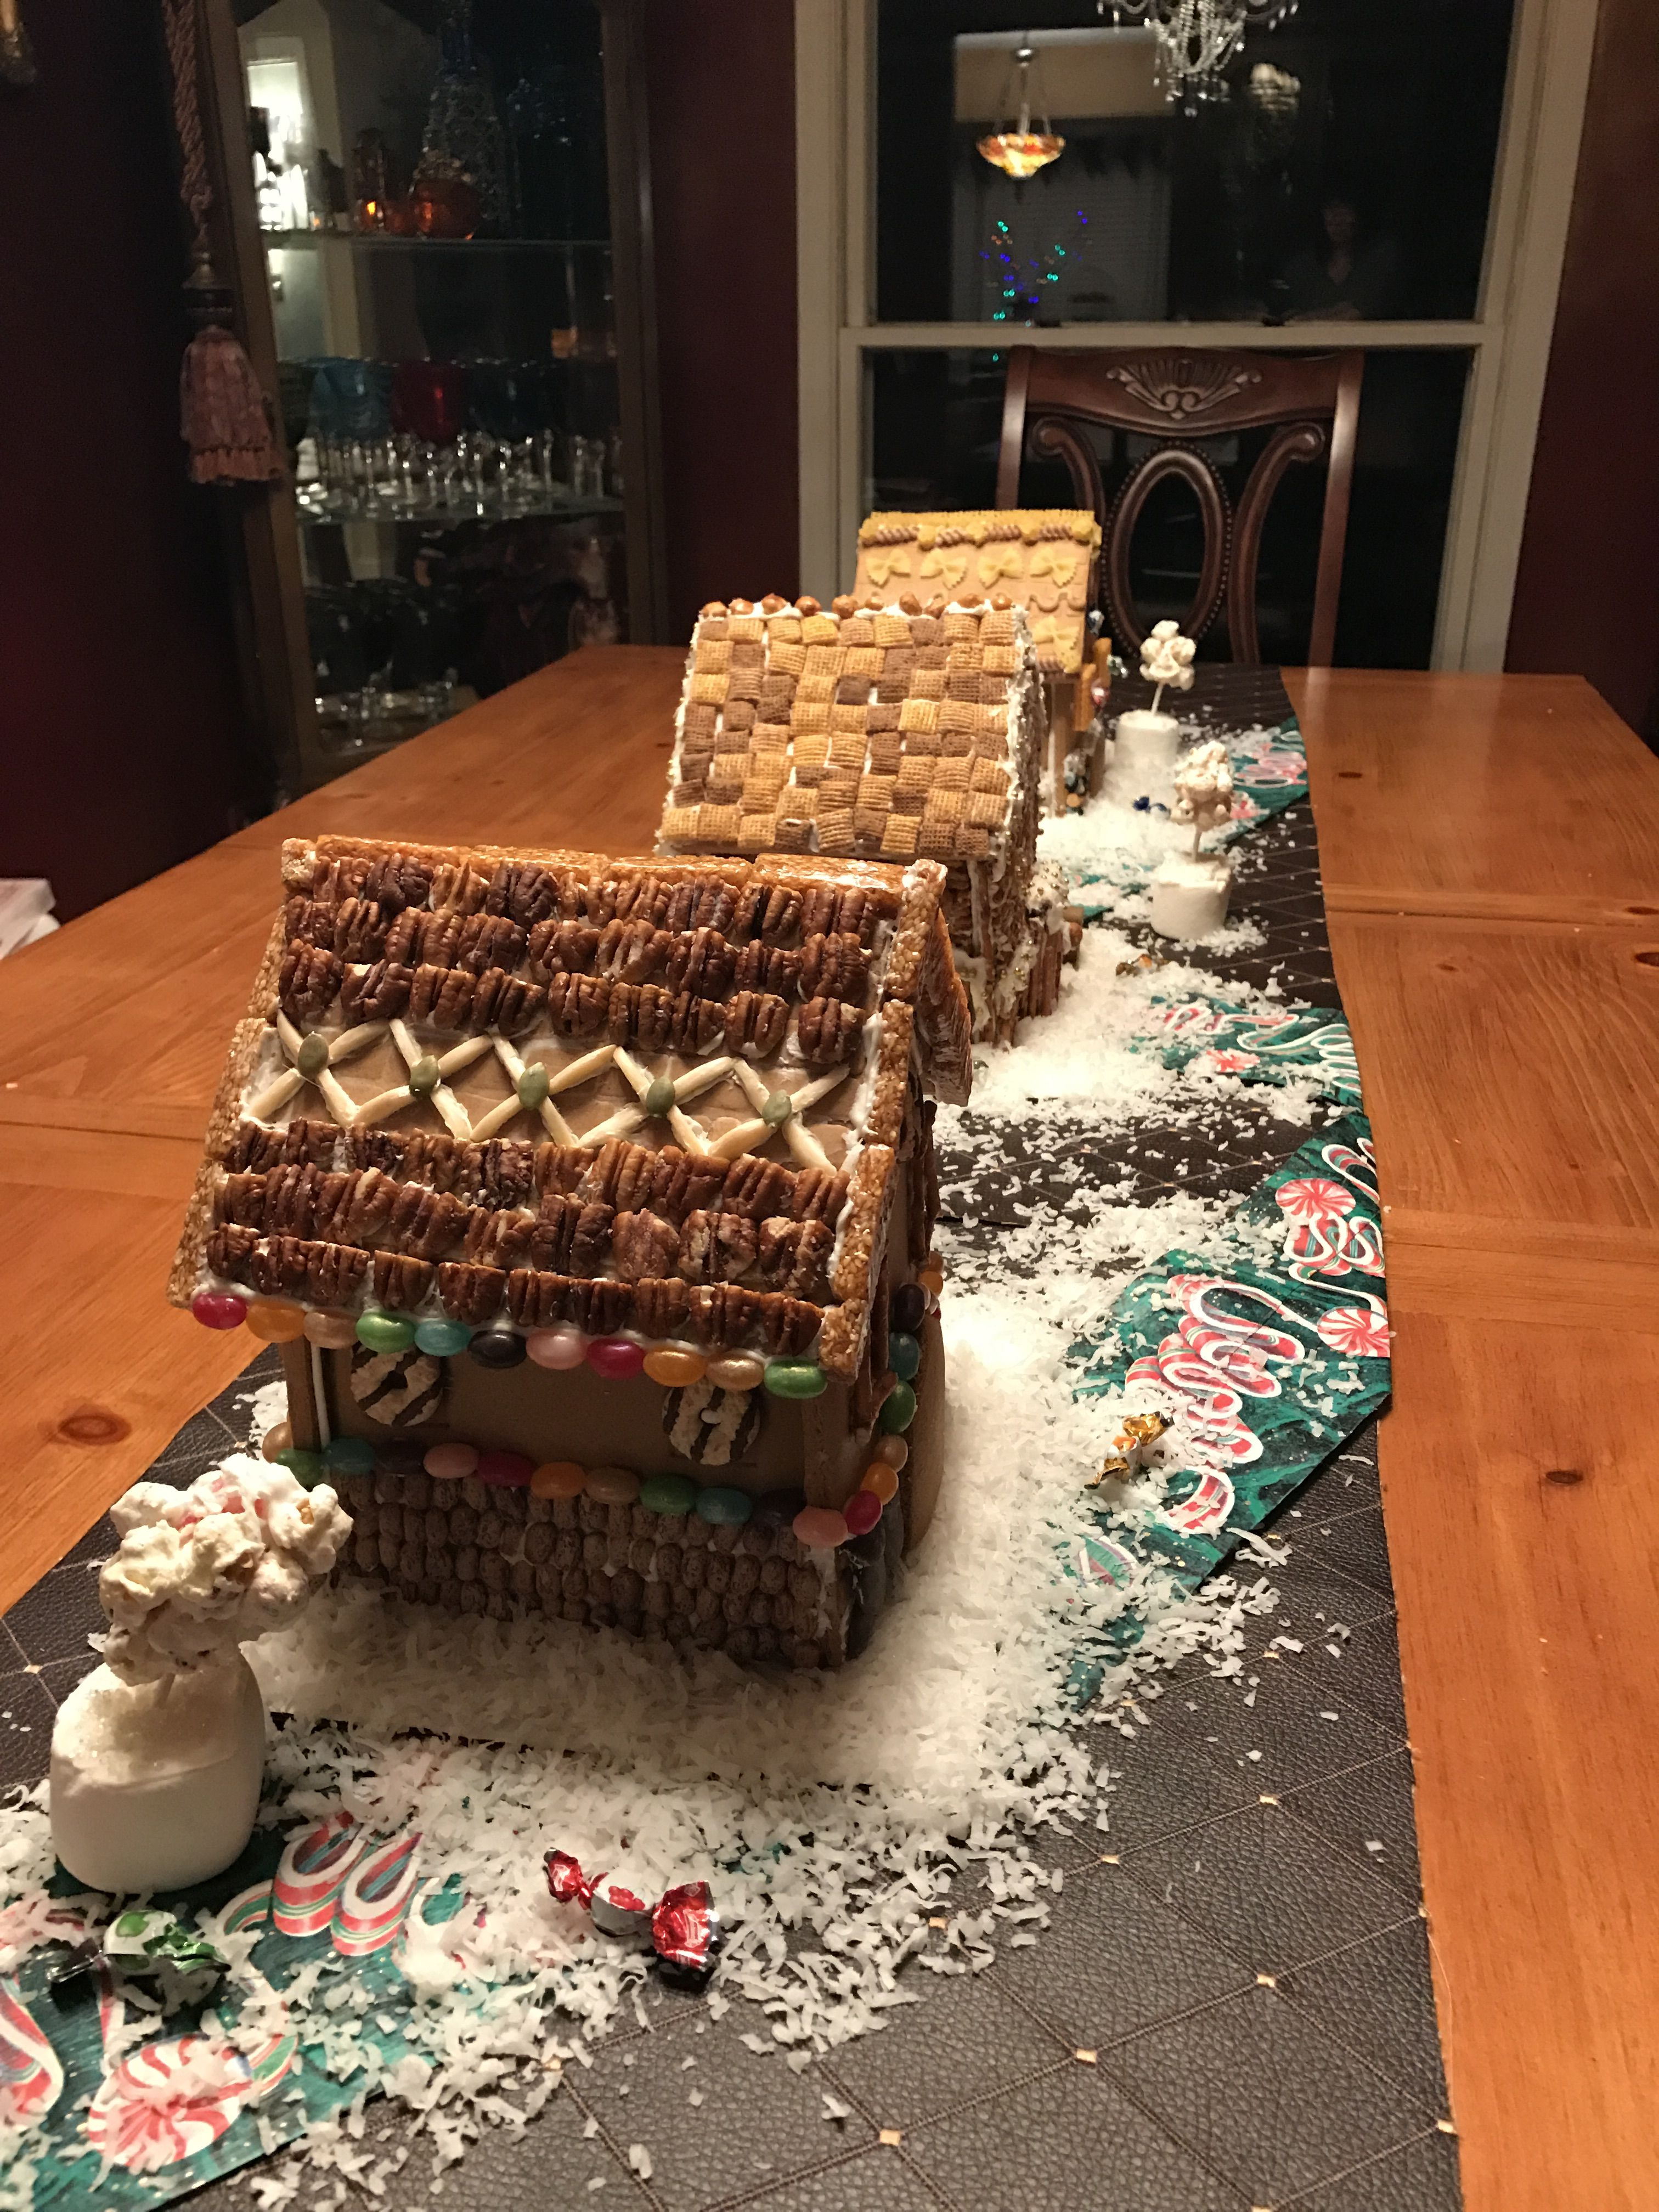 Gingerbread Houses 2016 image by Elana Darrus Decor